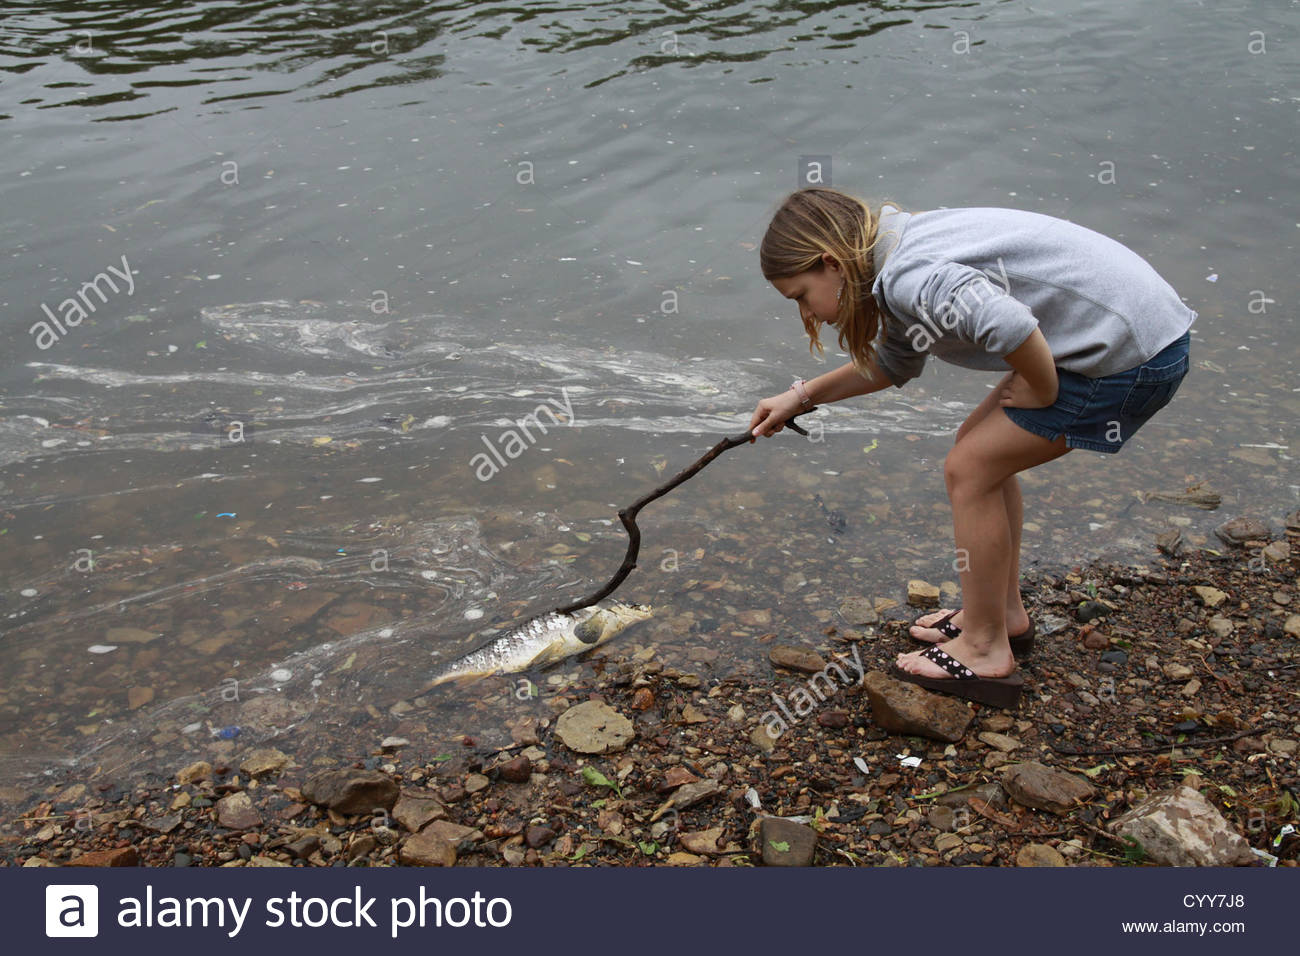 a-girl-poking-a-dead-fish-with-a-stick-C